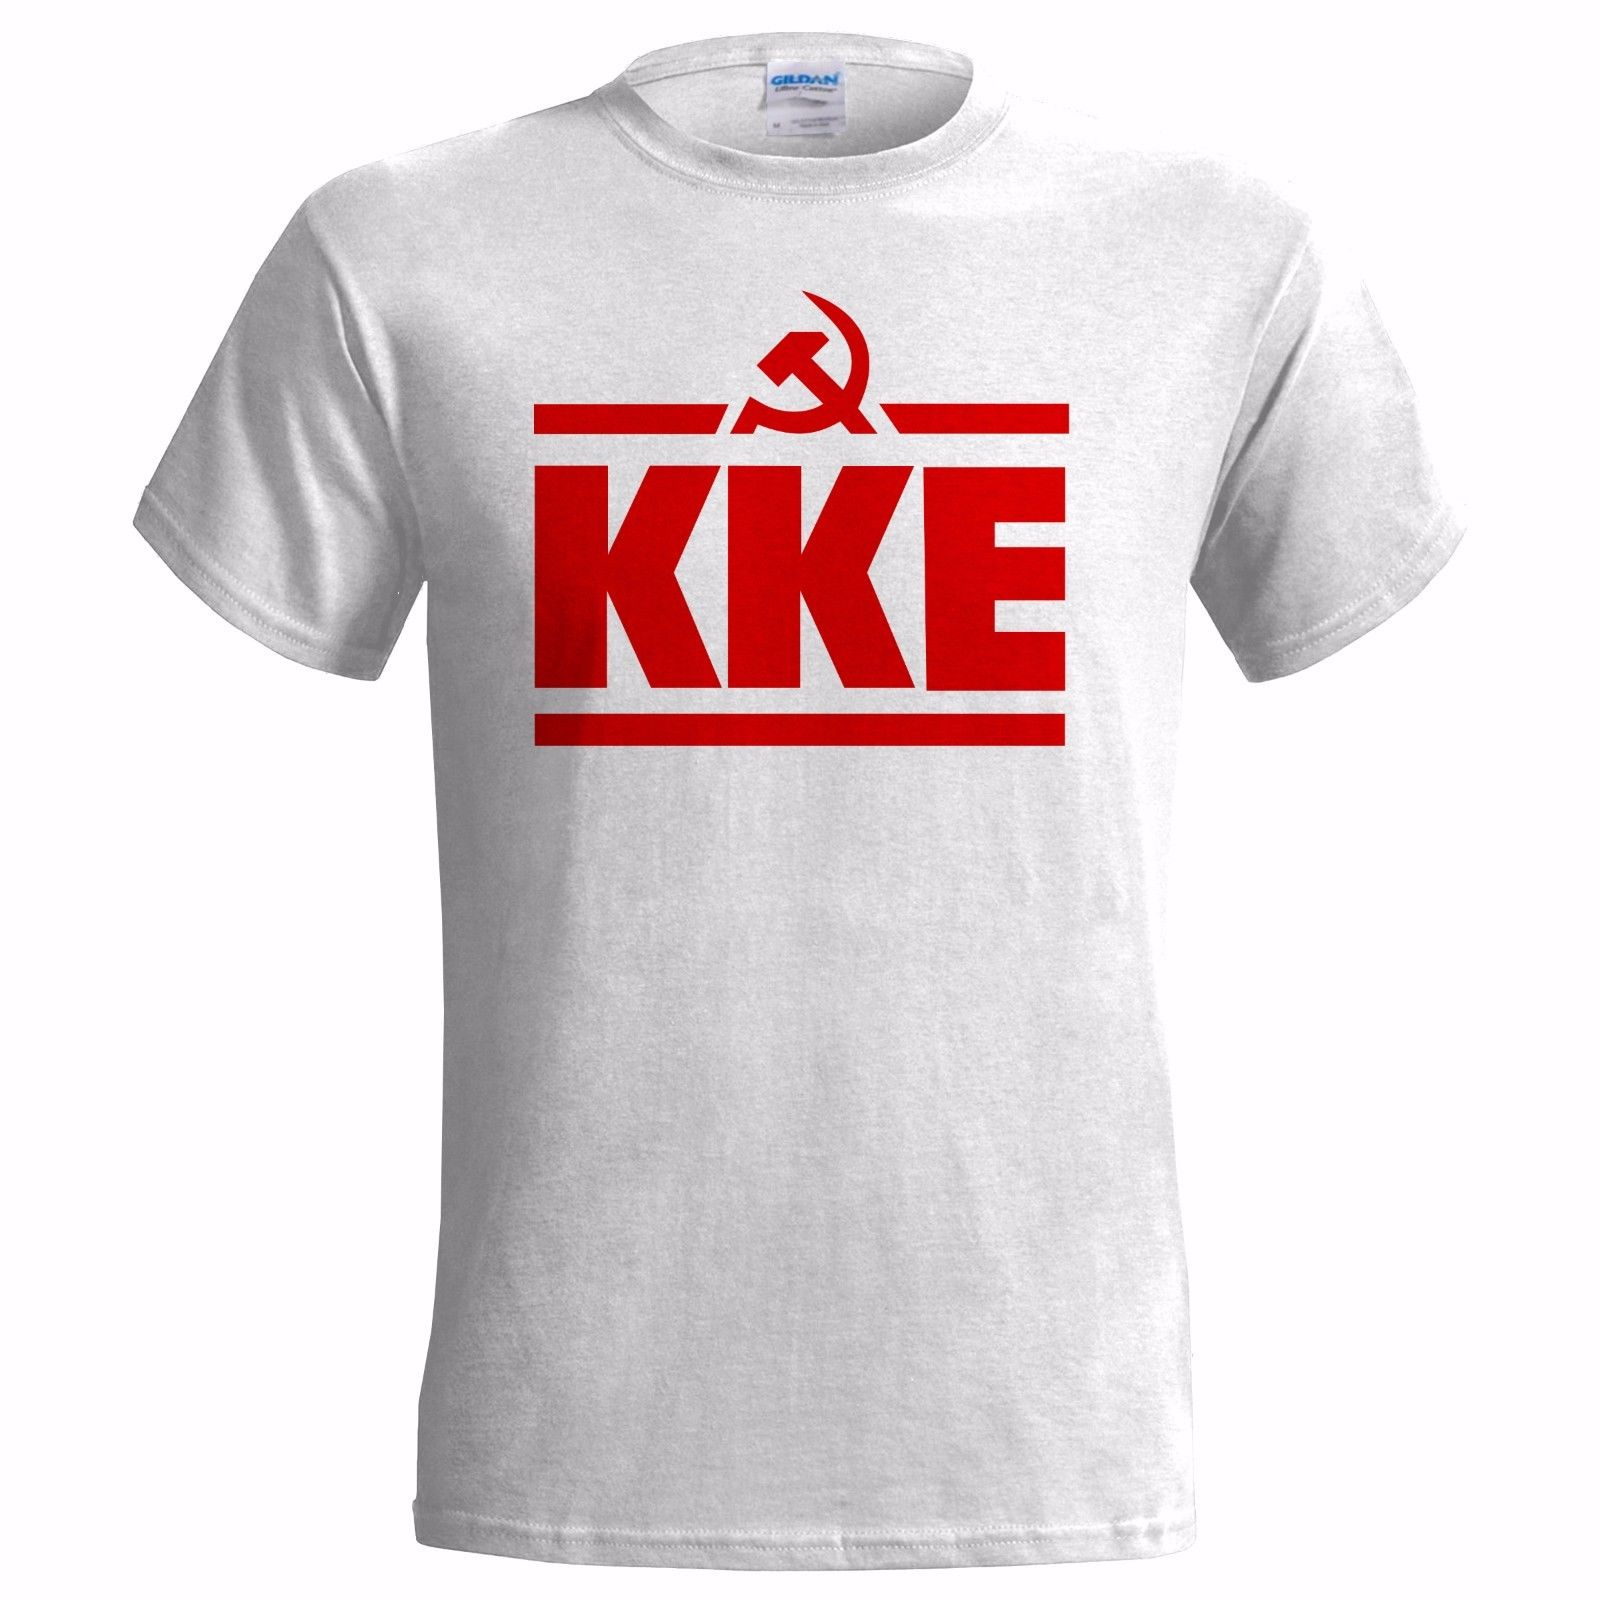 Men T Shirt 100% Cotton Print Shirts KKE LOGO MENS T SHIRT COMMUNIST GREECE GREEK PARTY COMMUNISM FREEDOM ANARCHY Tee Shirt